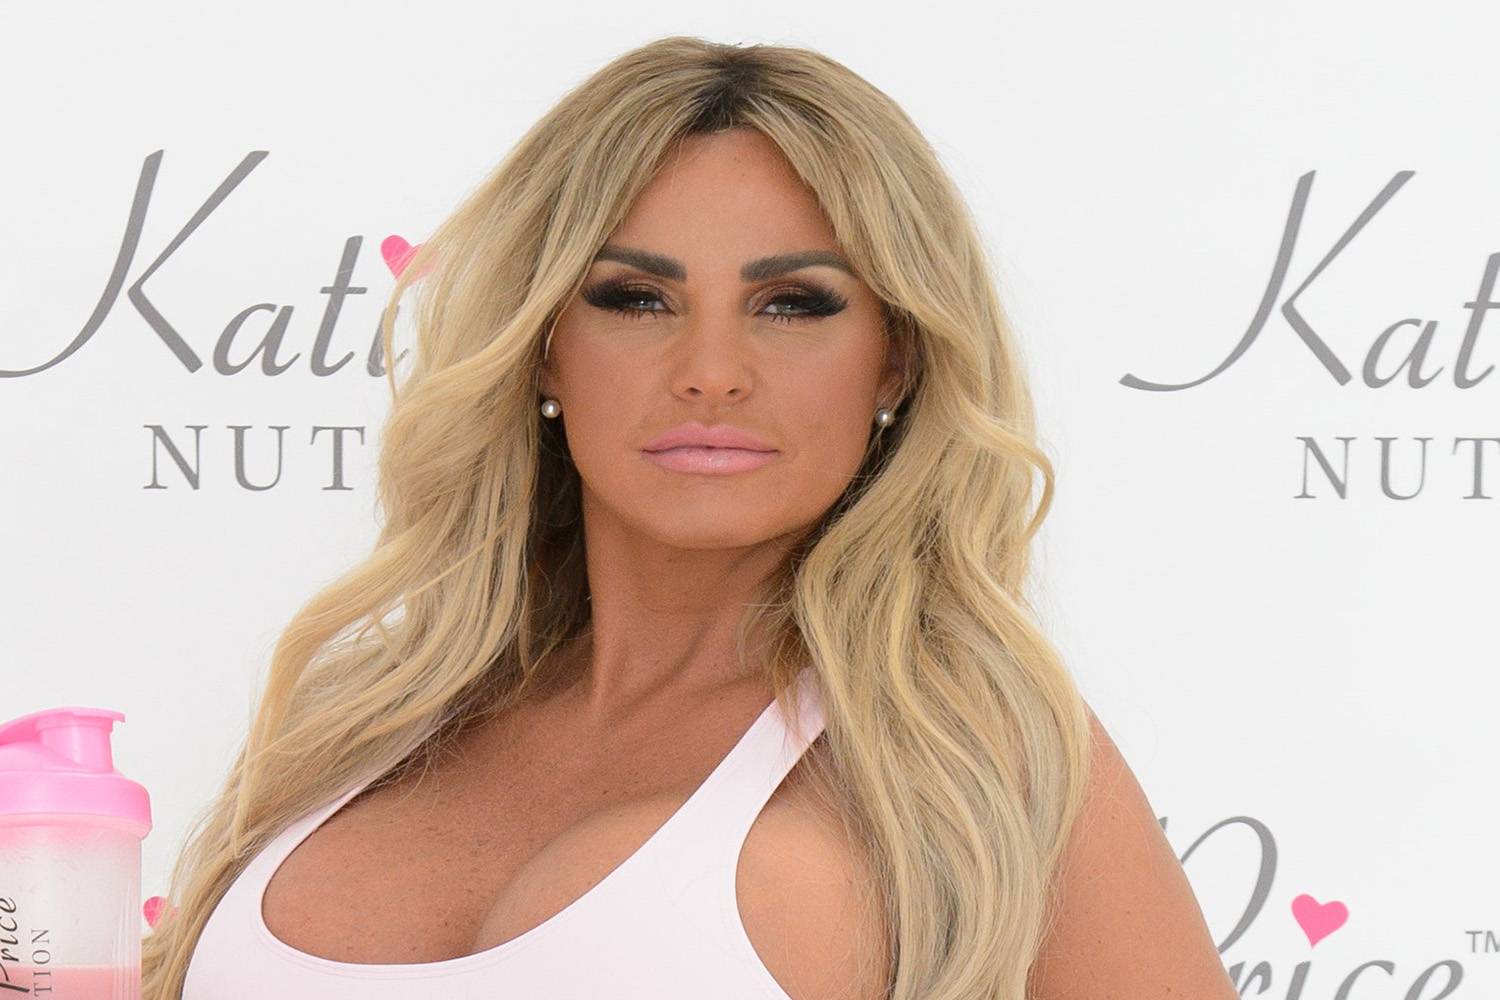 Katie Price thanks NHS as son Harvey returns home after being hospitalised with 'bug'